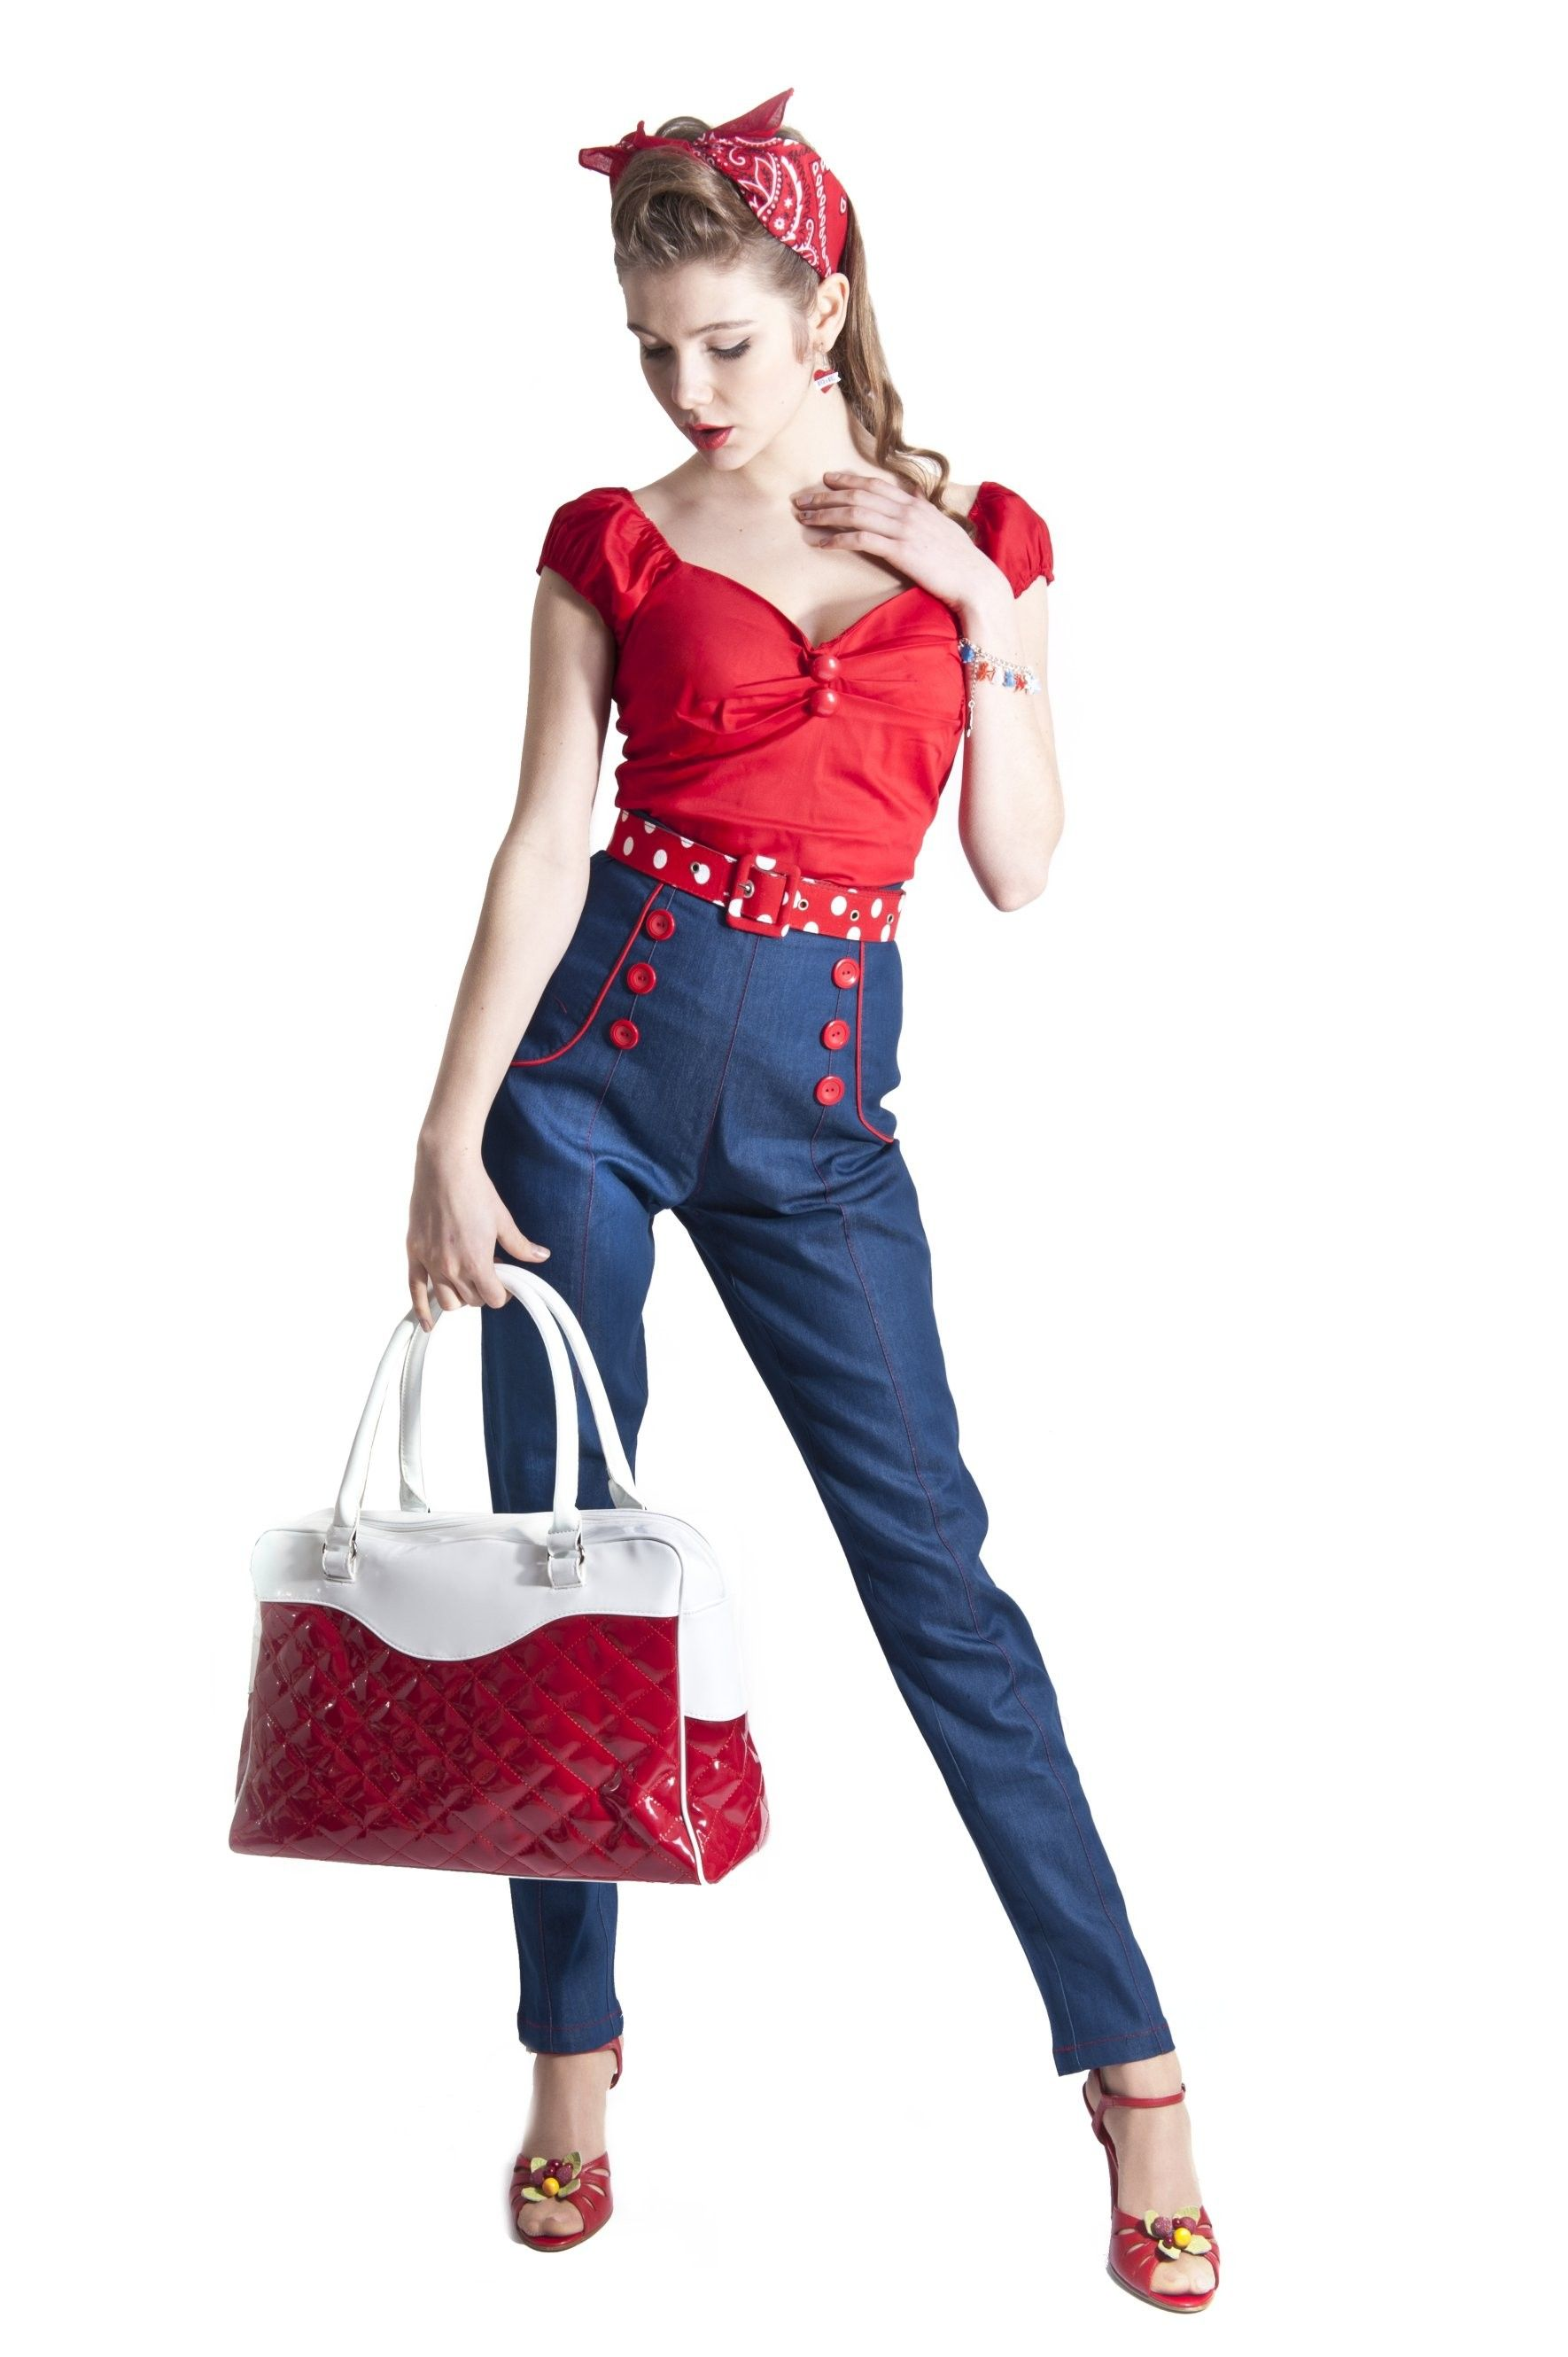 Pantalon jeans r tro pin up 50 39 s rockabilly barbara pantalon vetements femme tous nos - Femme pin up ...